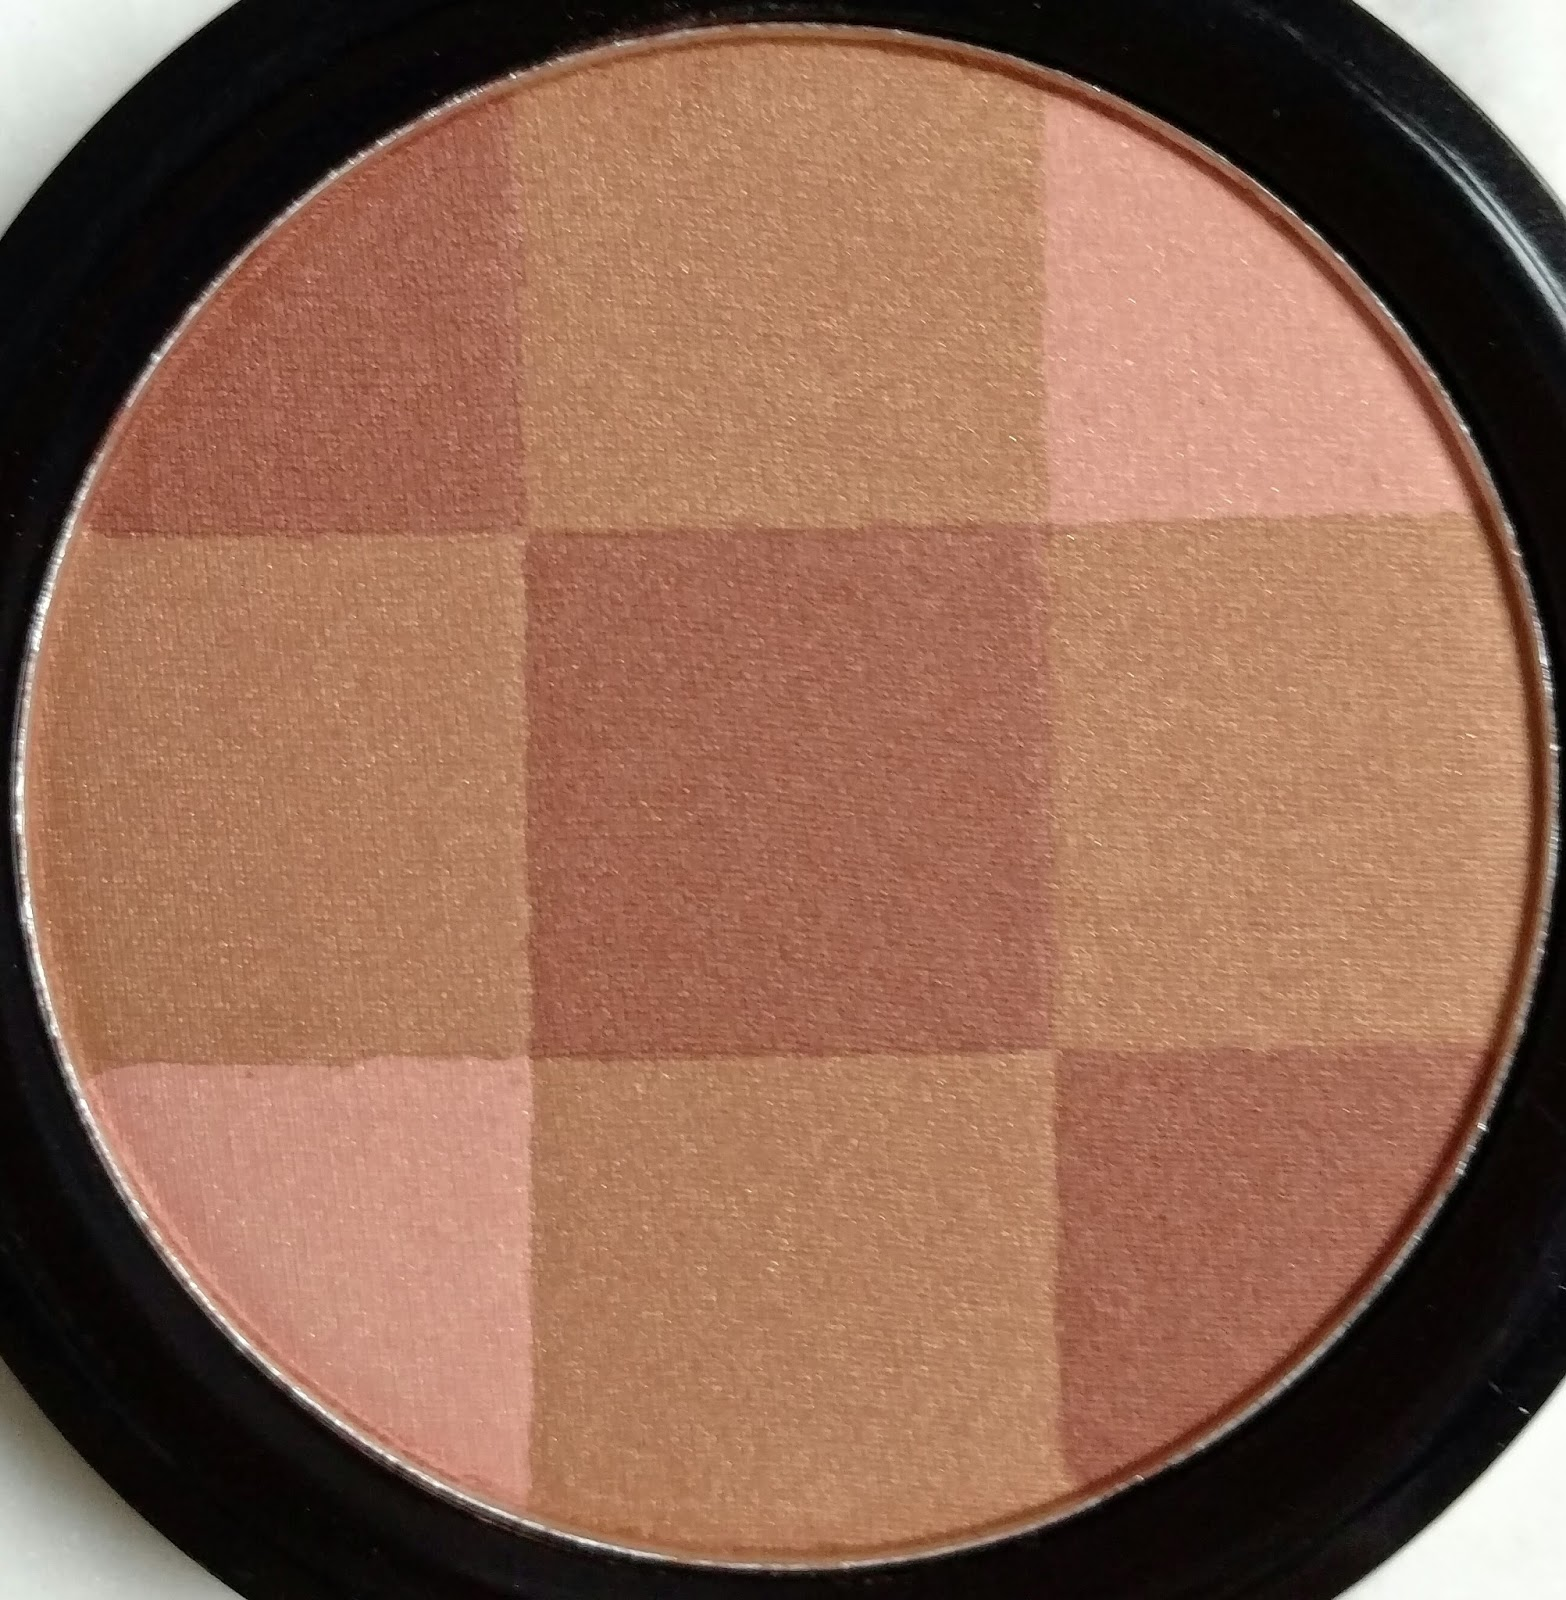 City Color Mosaic Blush Review & Swatches   The Budget Beauty Blog